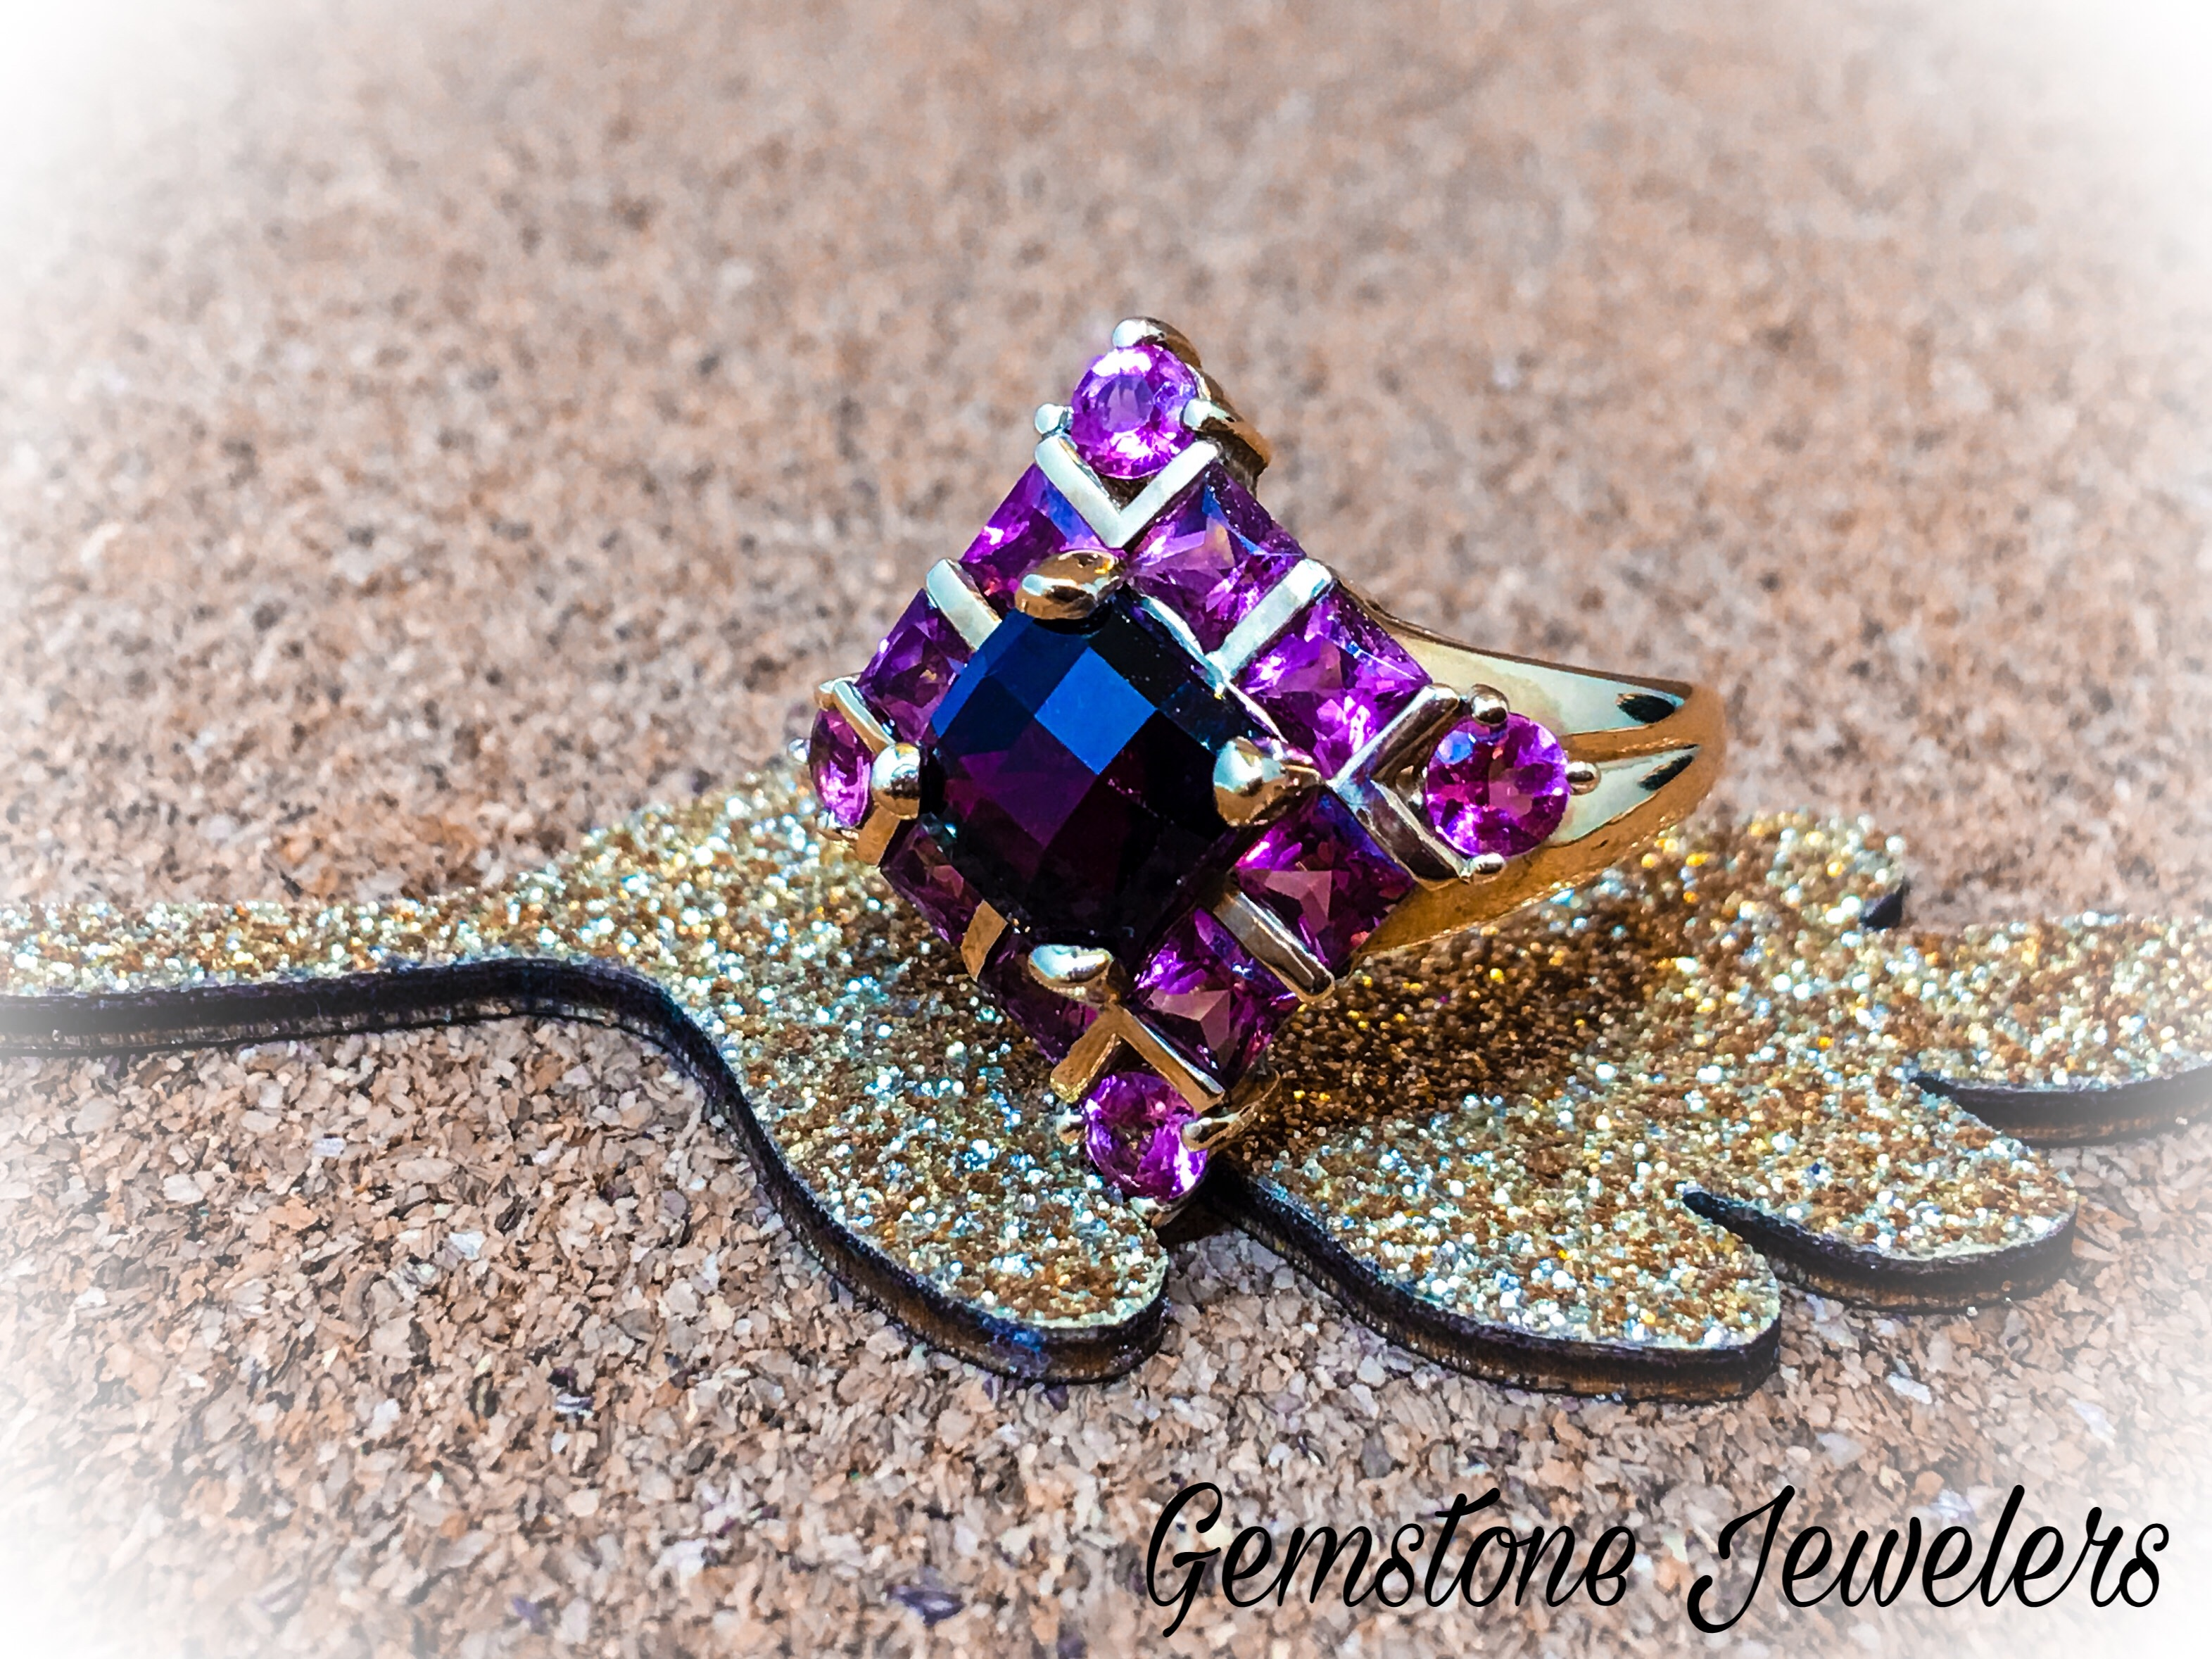 accent rhodium season stones colors those of the every black one andreoli well take purple editorial greenish any that article can color paired jewels with chameleonic is almost and work jck gemstone on